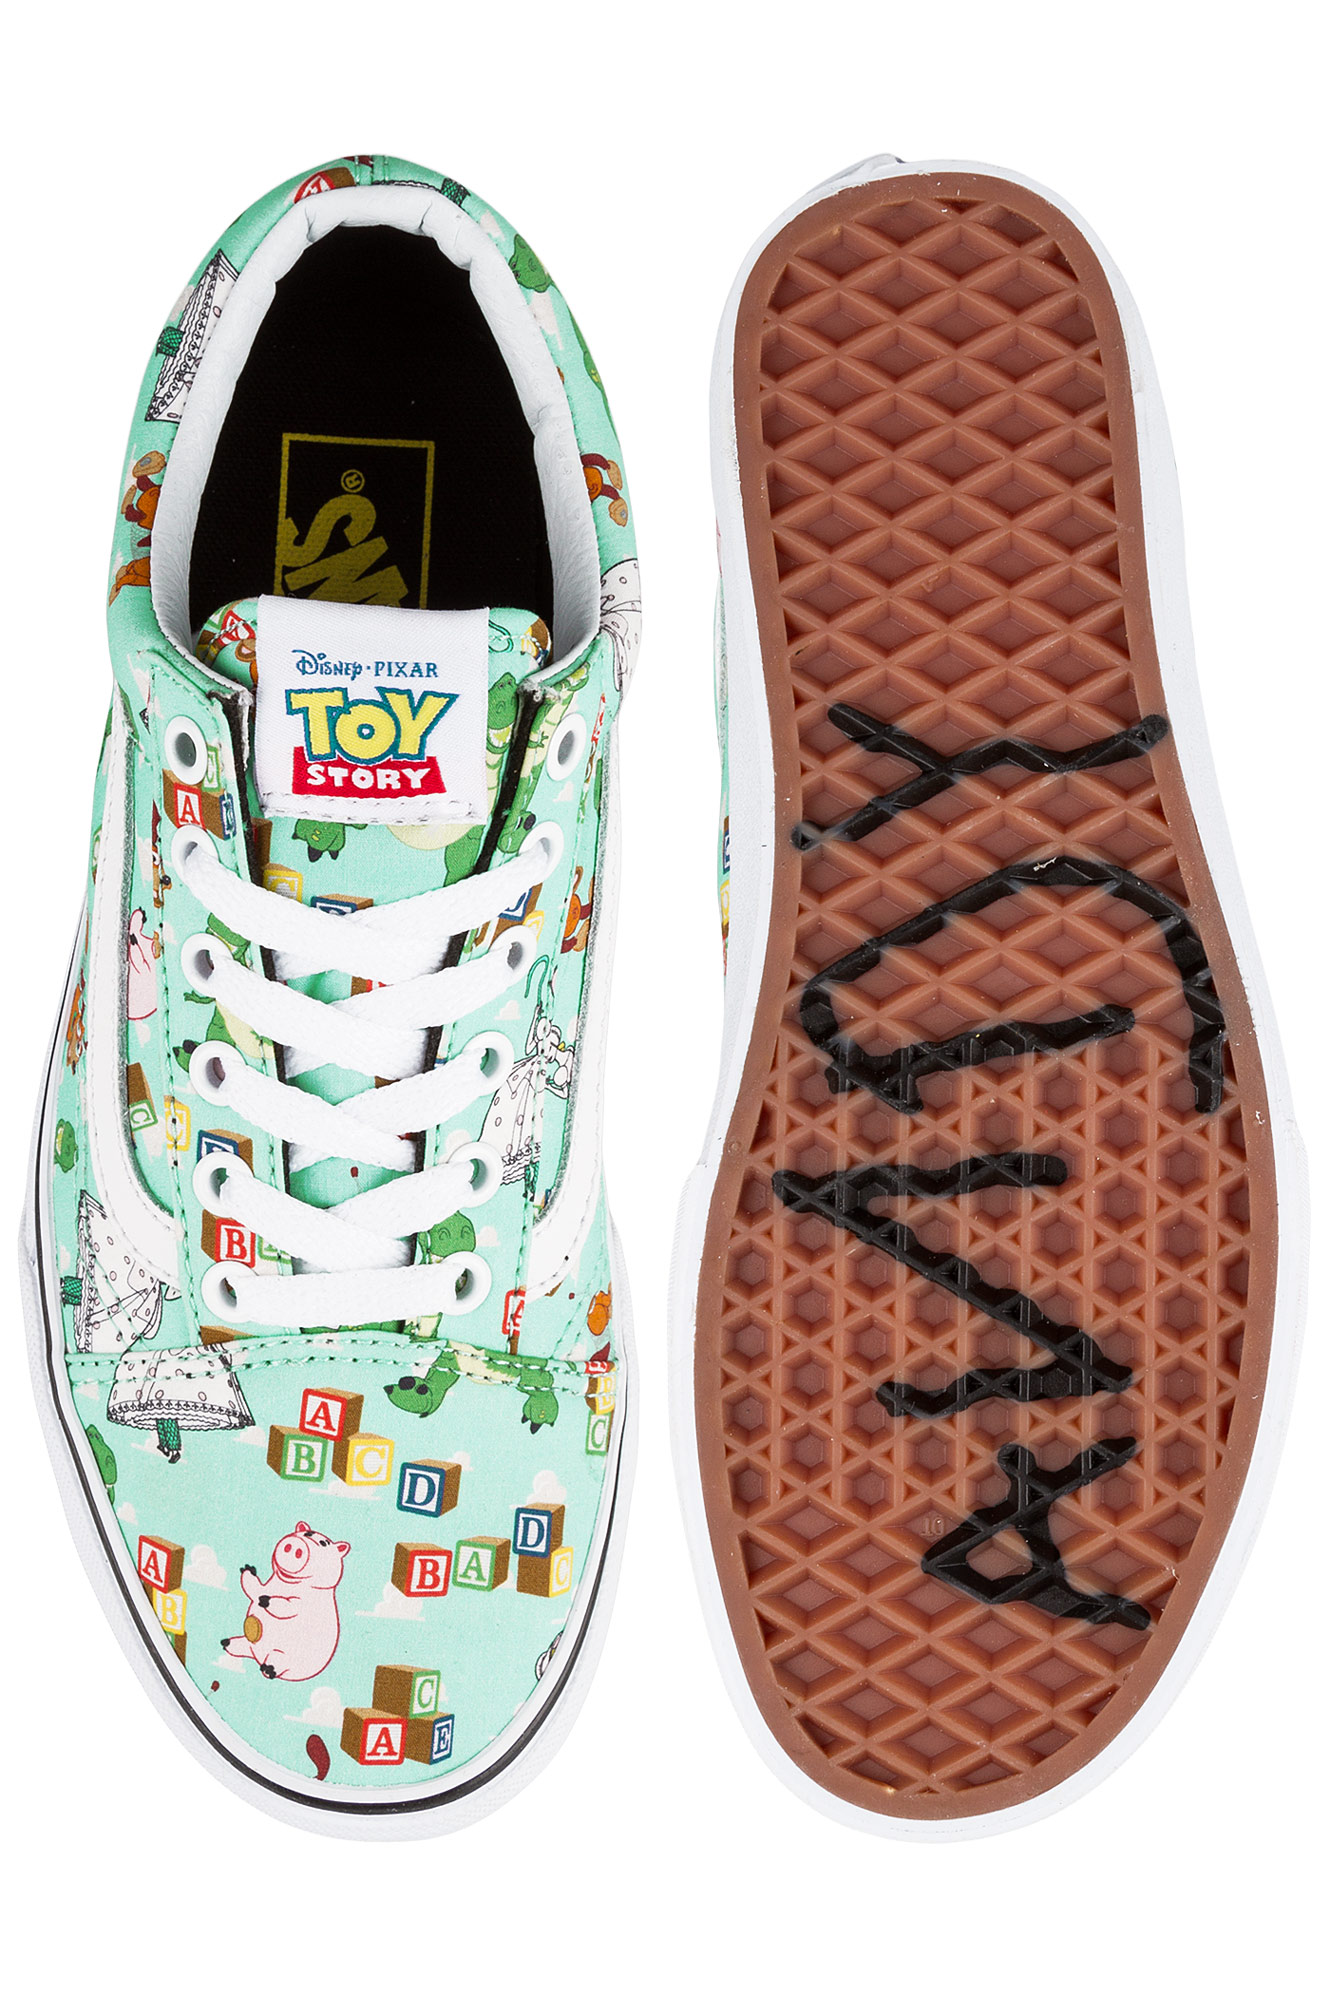 Andy Toy Story Shoe